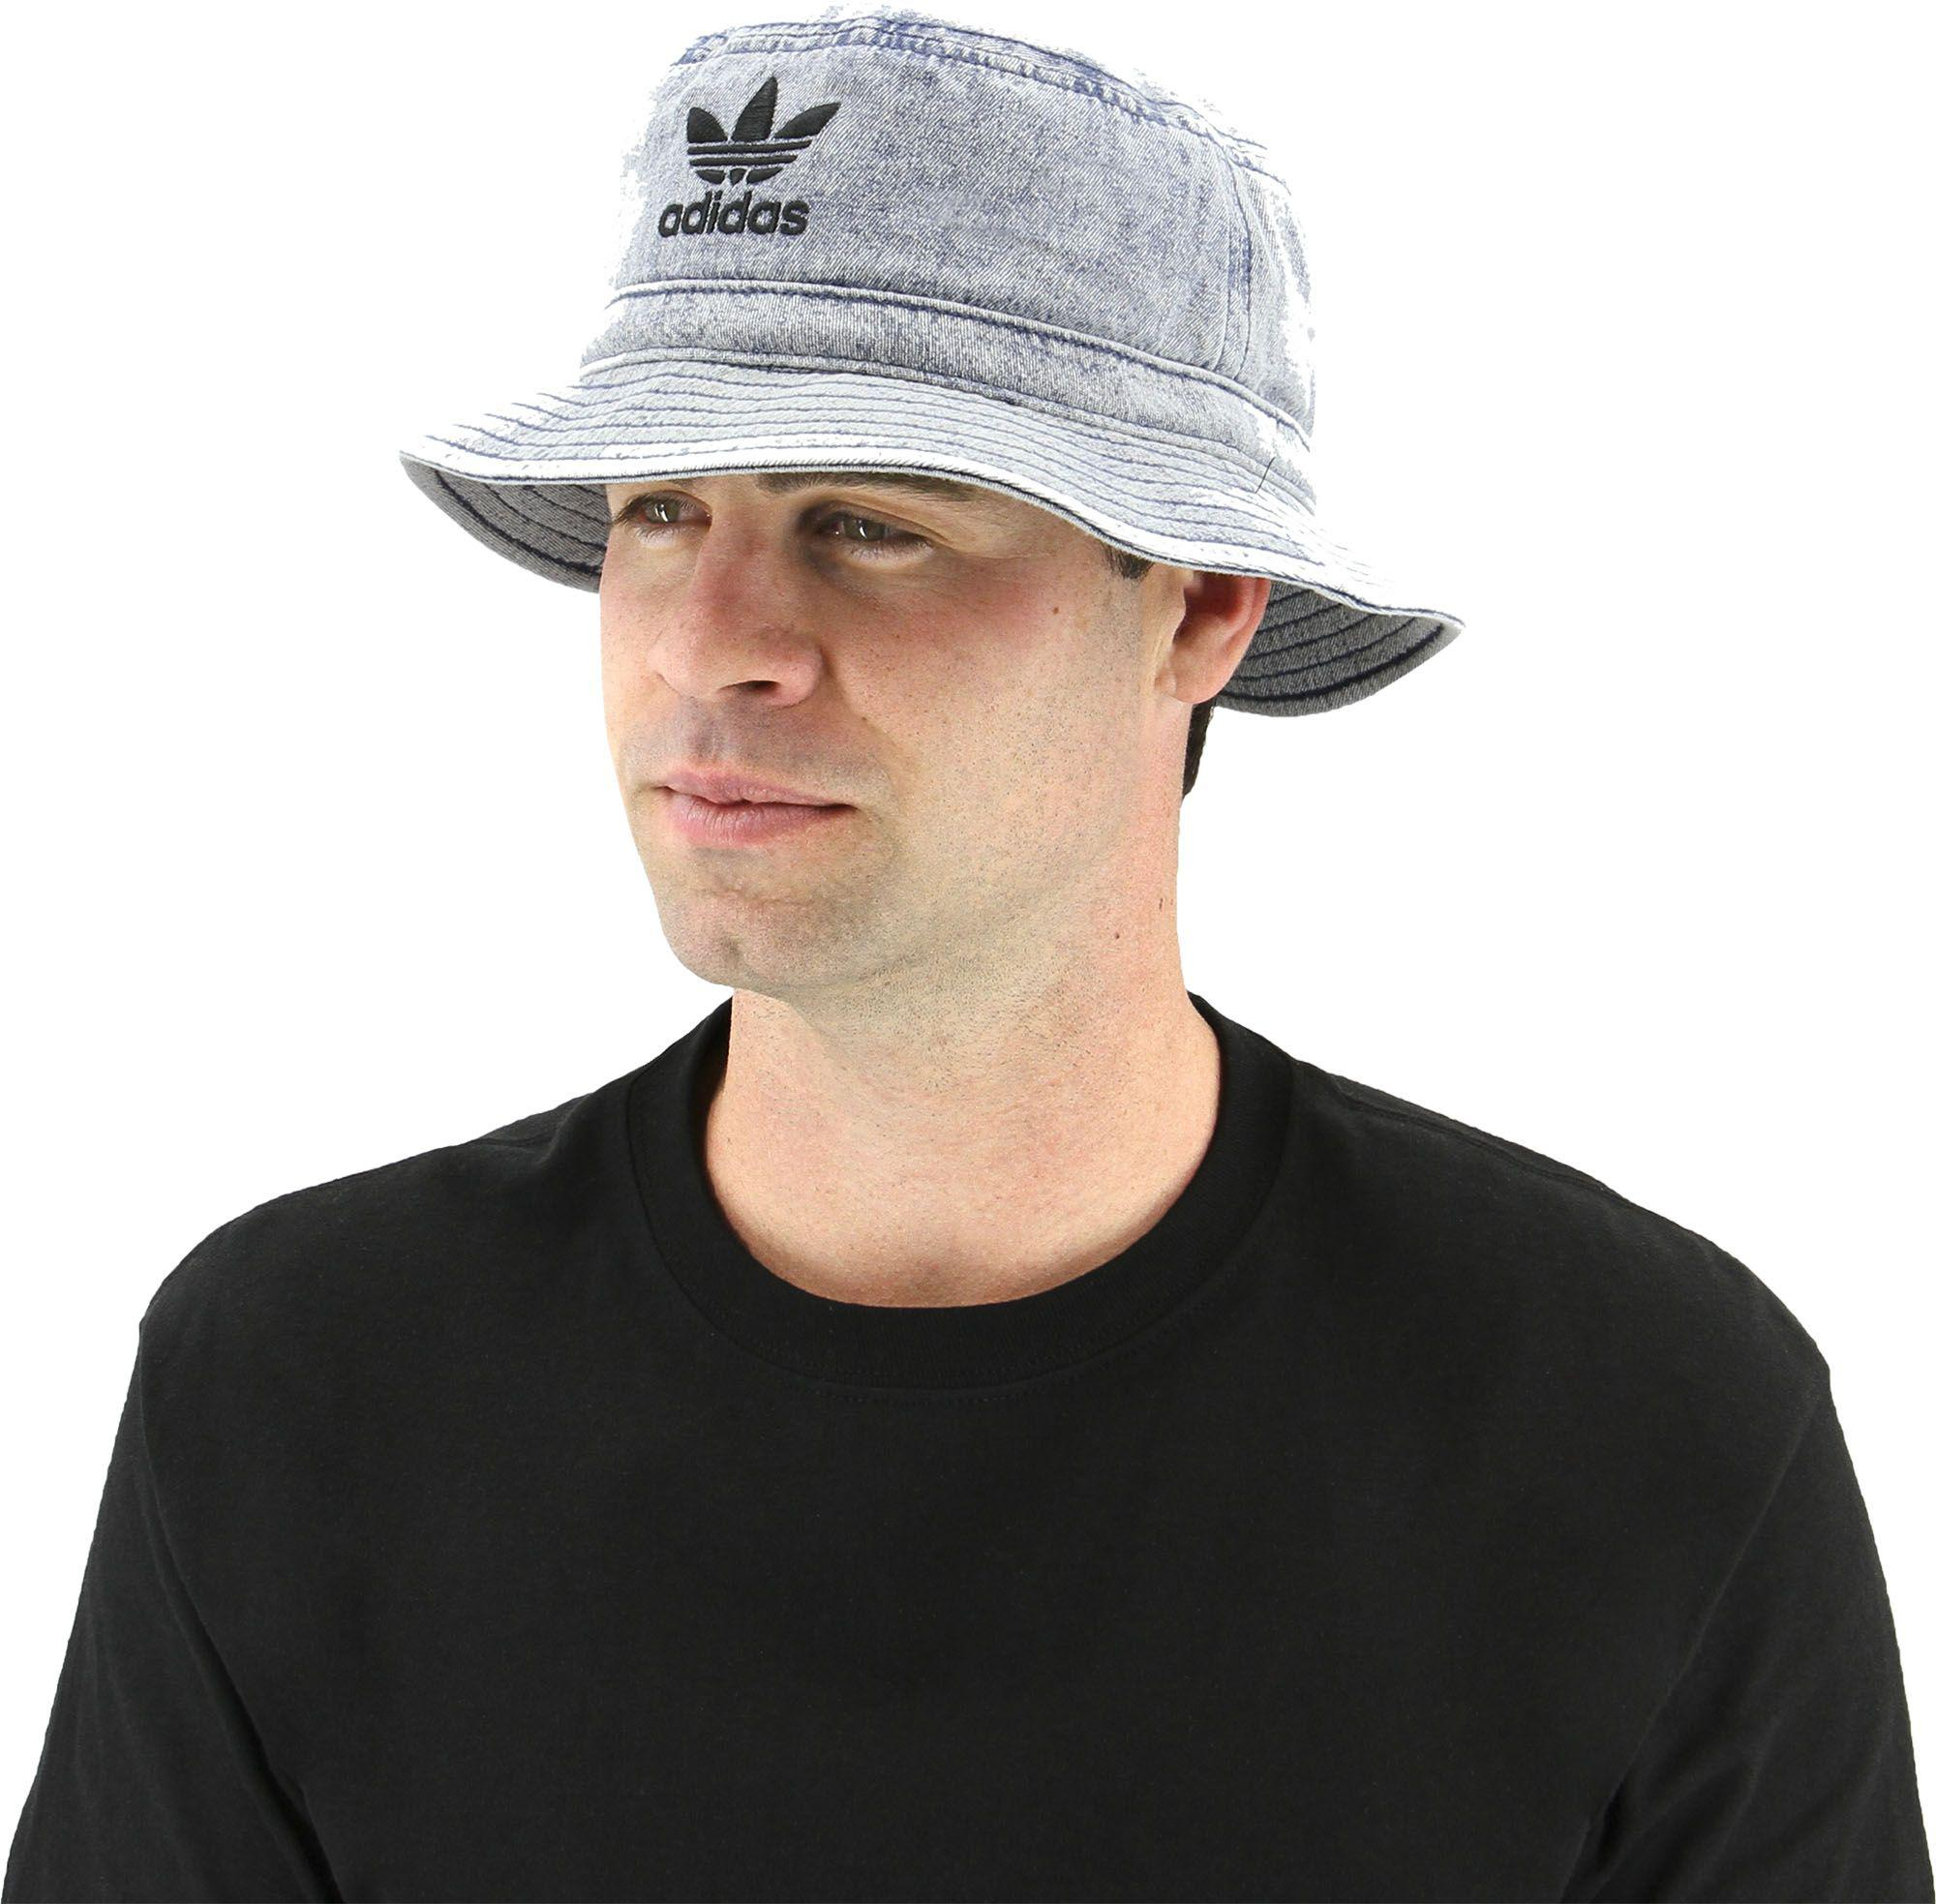 dc28f13a Gallery. Previously sold at: Dick's Sporting Goods · Men's Bucket Hats